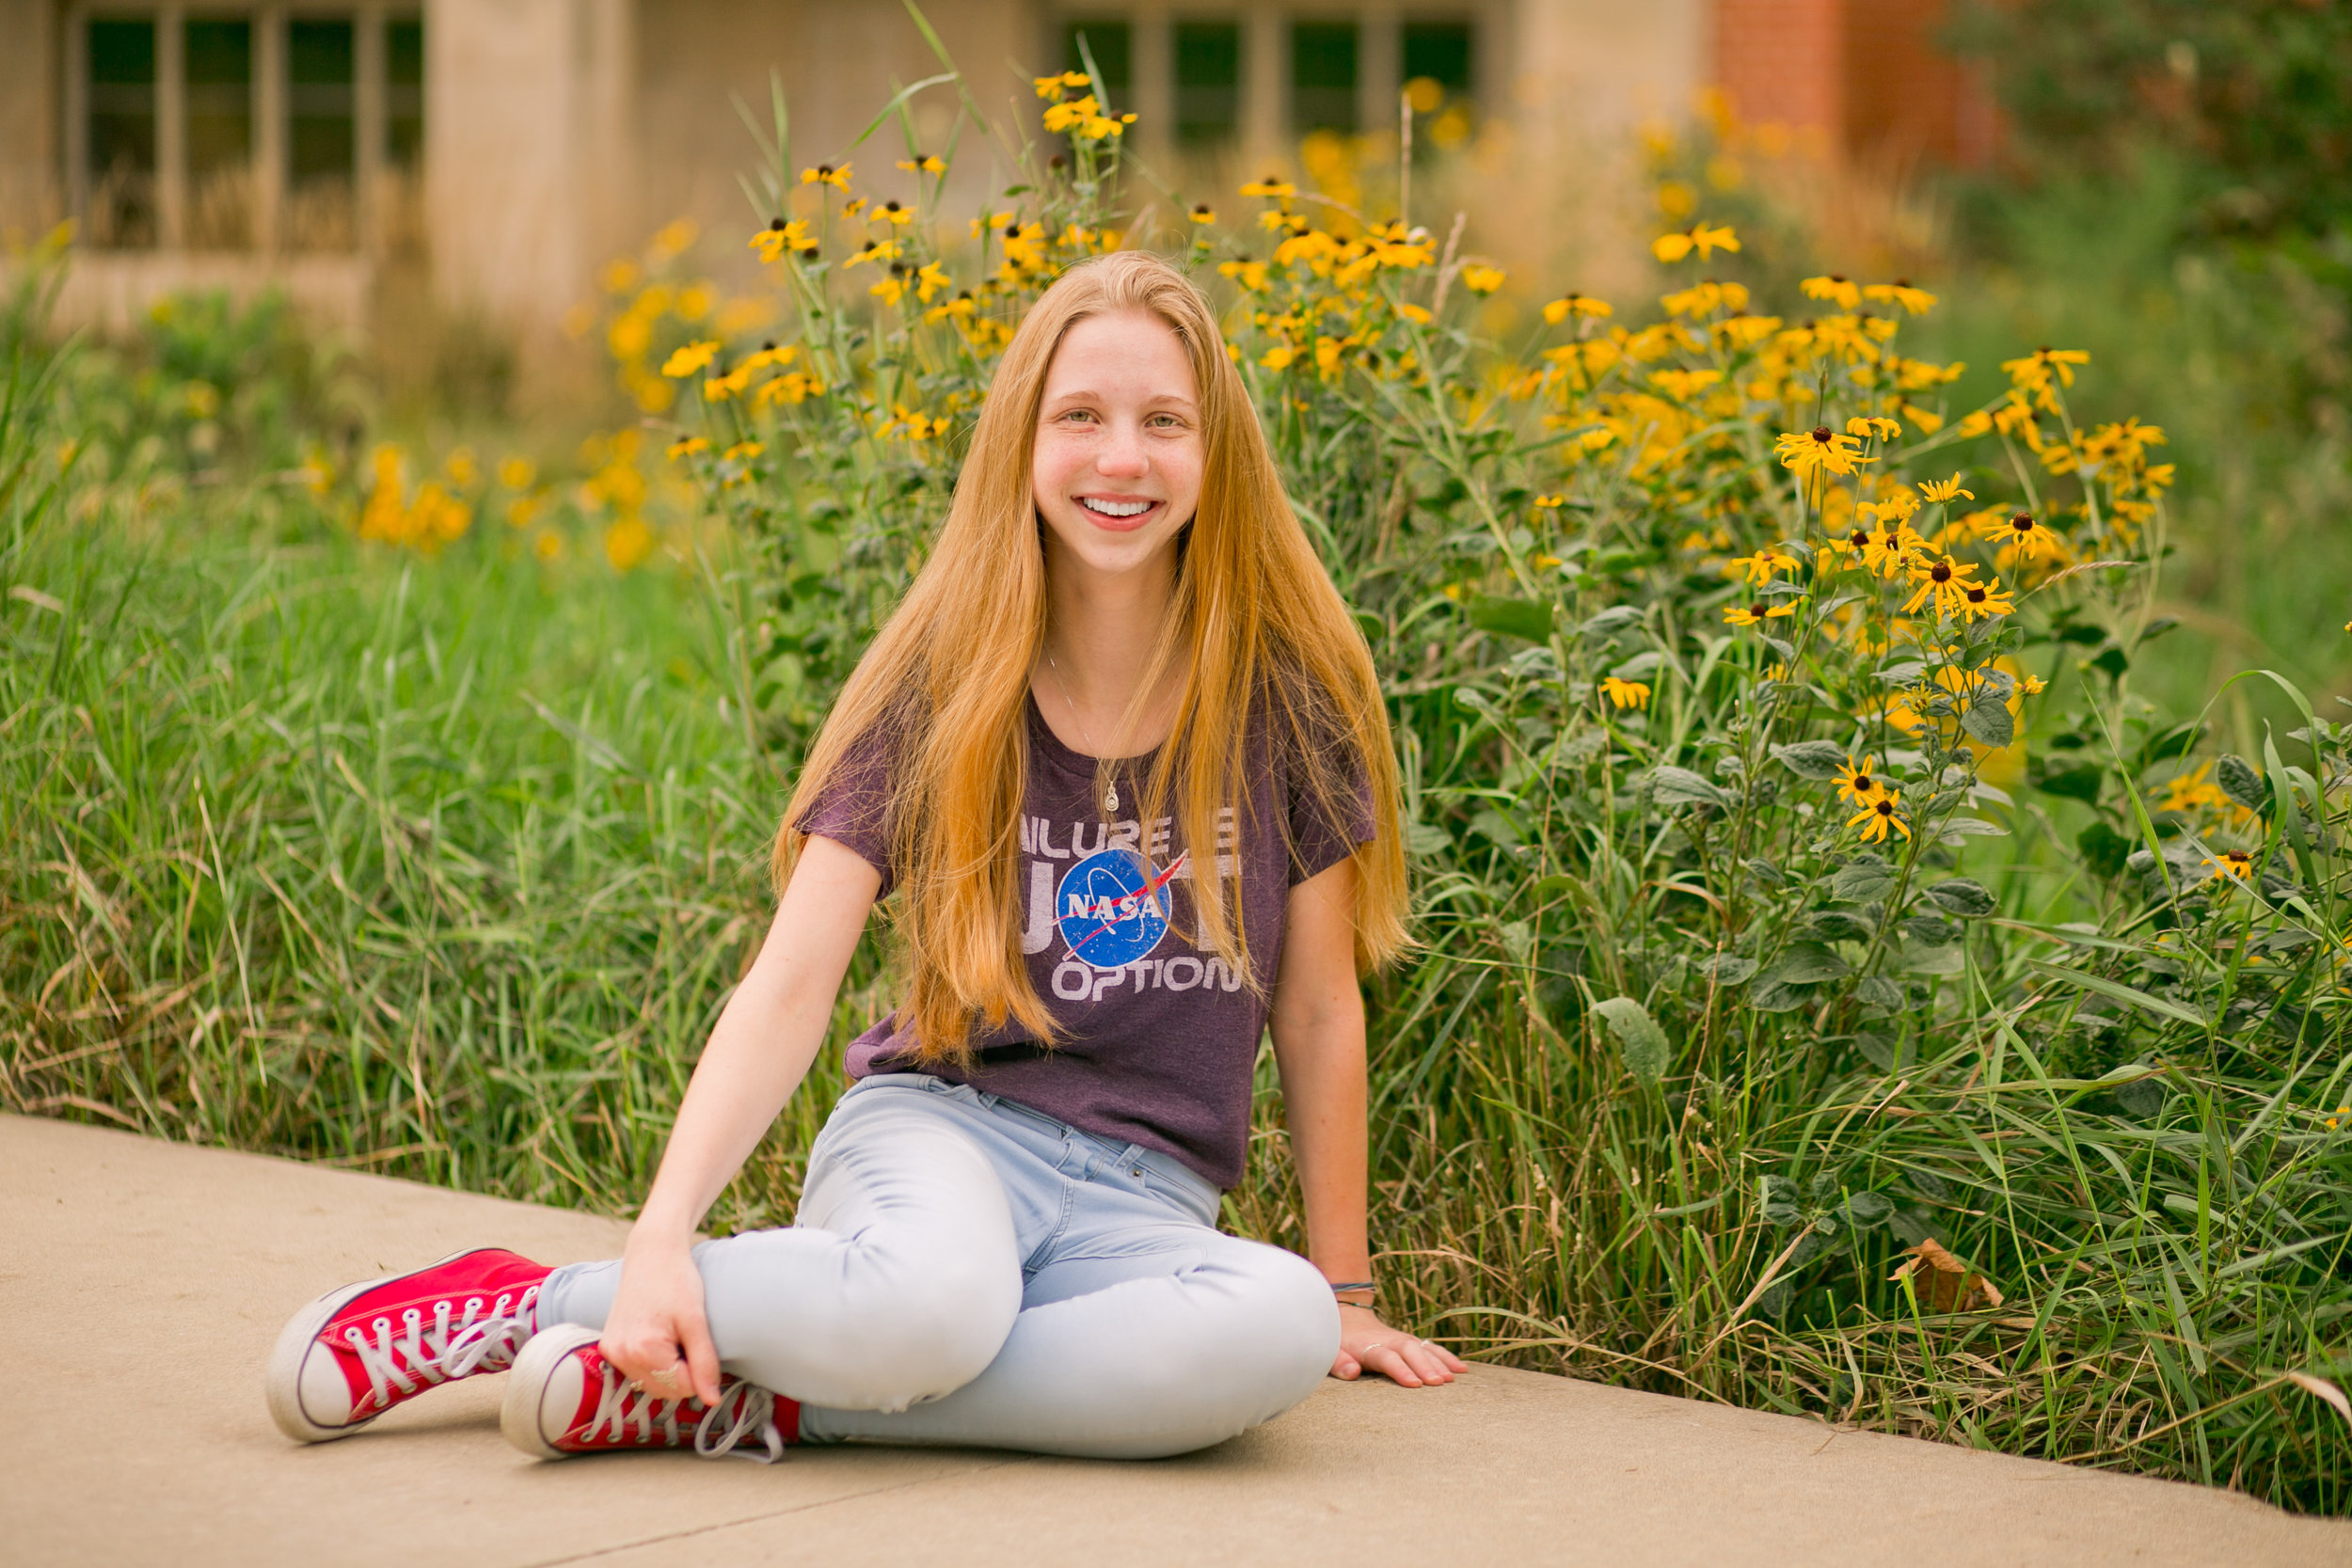 senior girl with long red hair sitting in front of yellow flowers and green grass